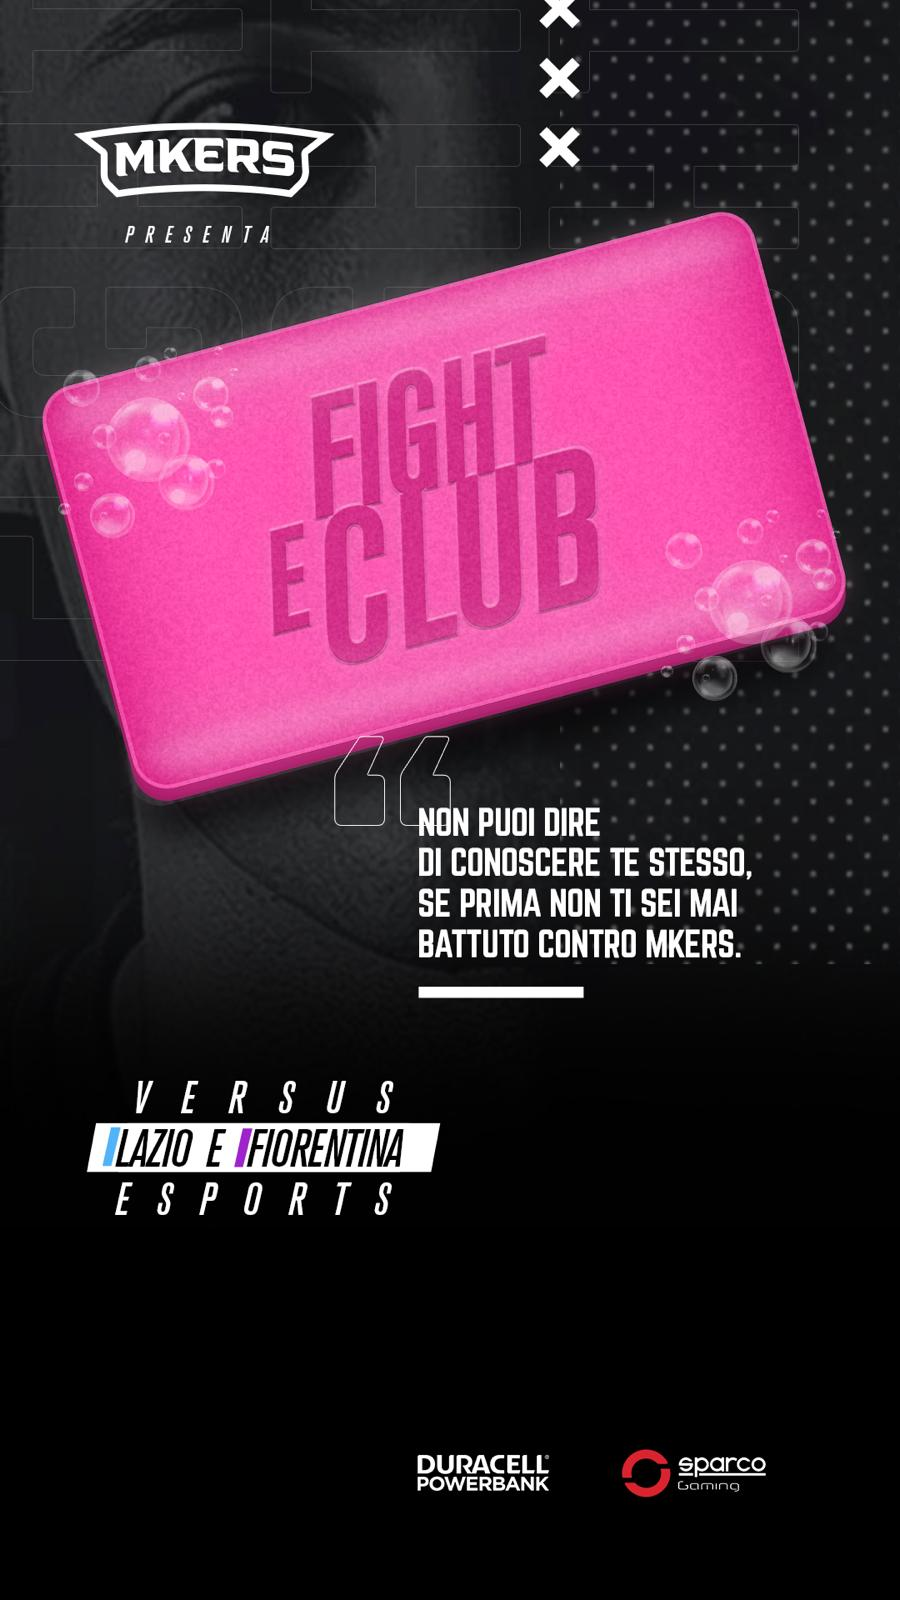 Dove vedere Fight eClub in streaming